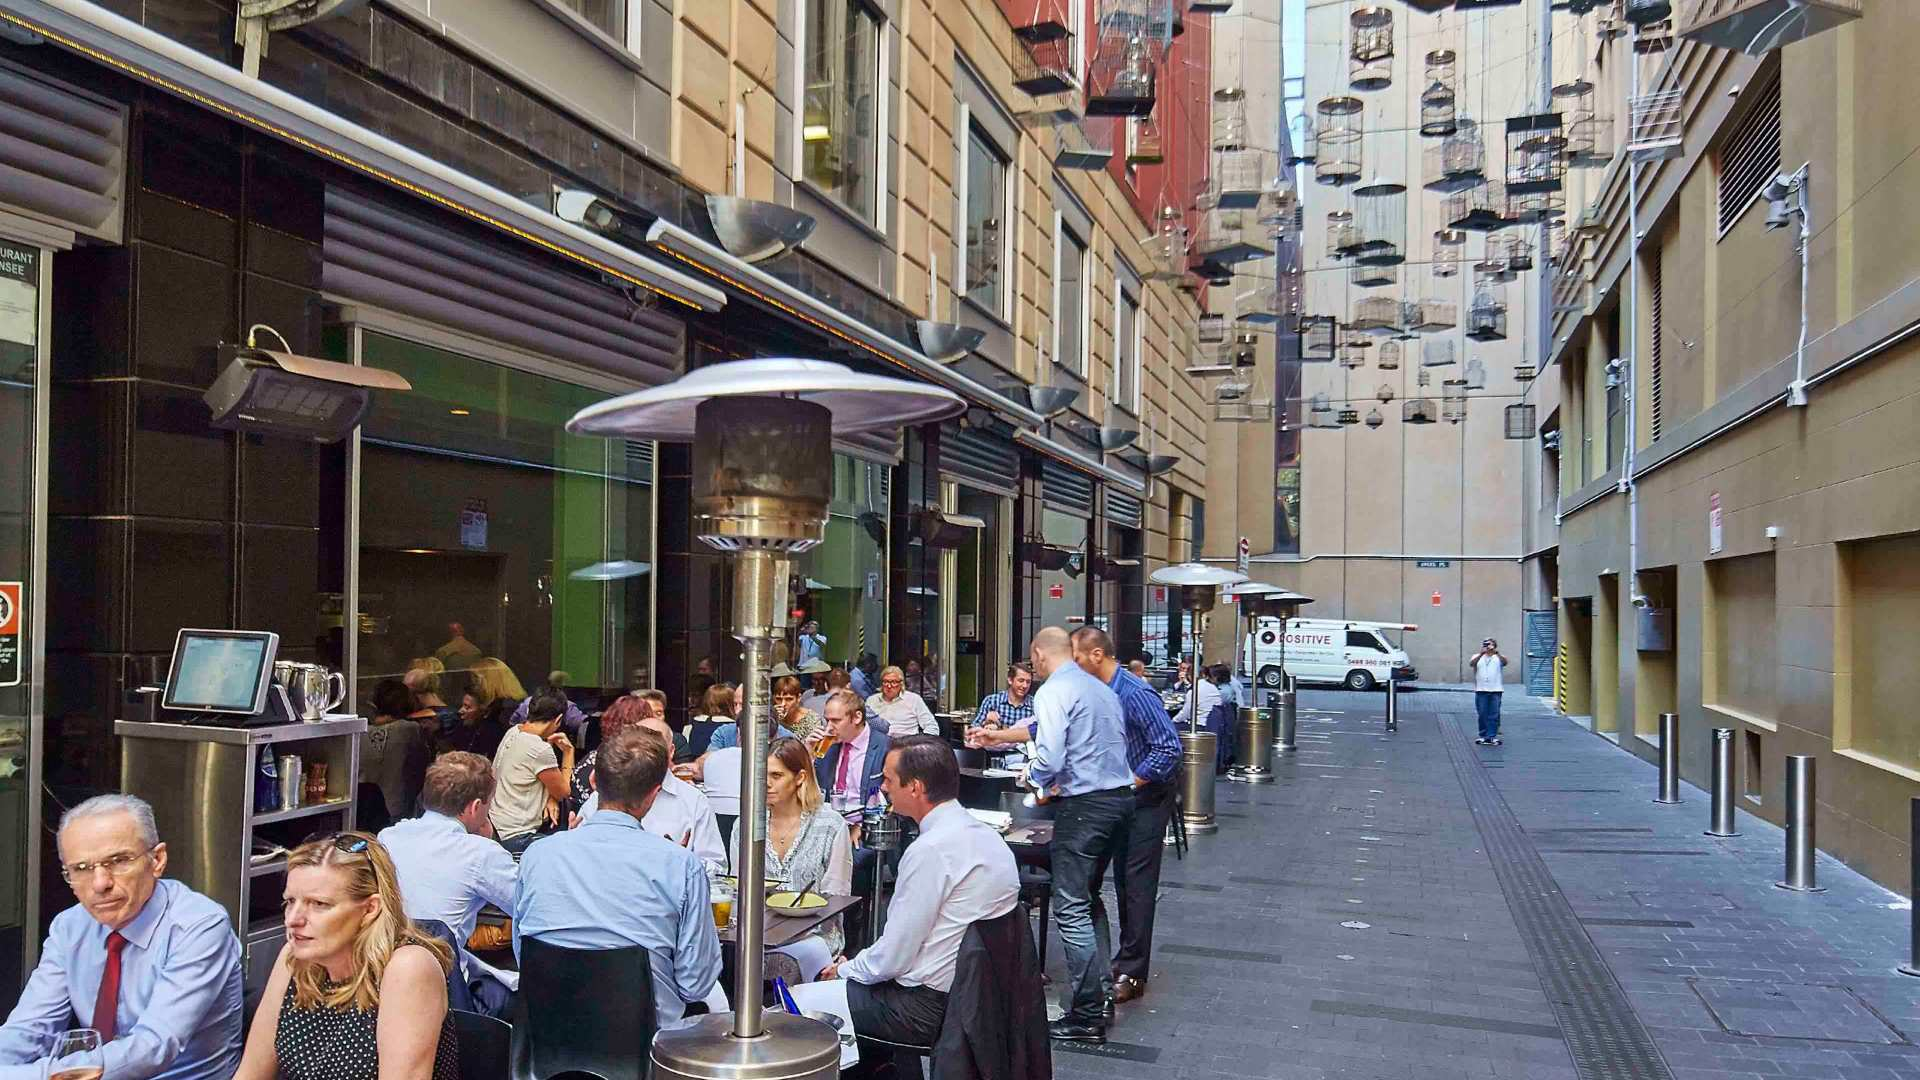 The City of Sydney Is Set to Revamp Ten CBD Laneways with New Walkways and Art Installations